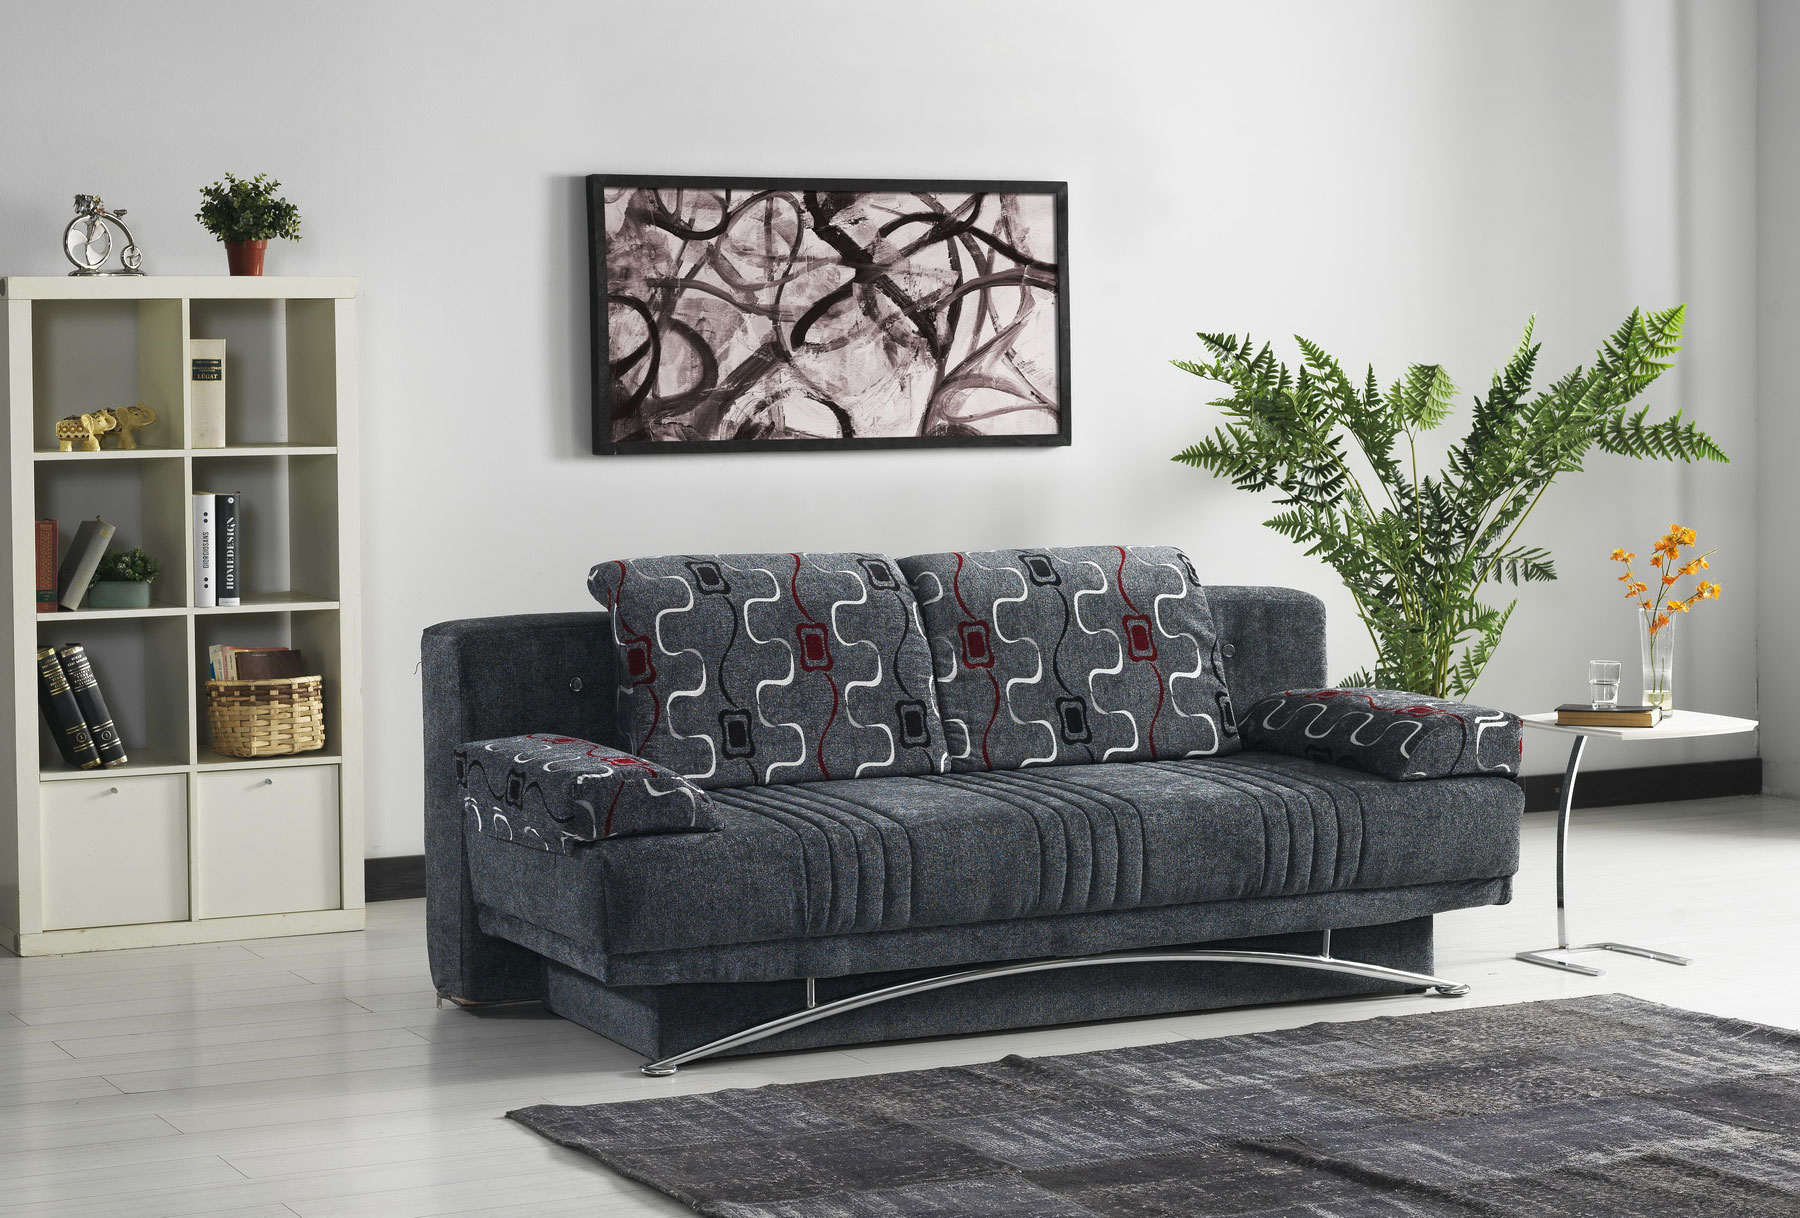 Fontana gray sofabed queen size